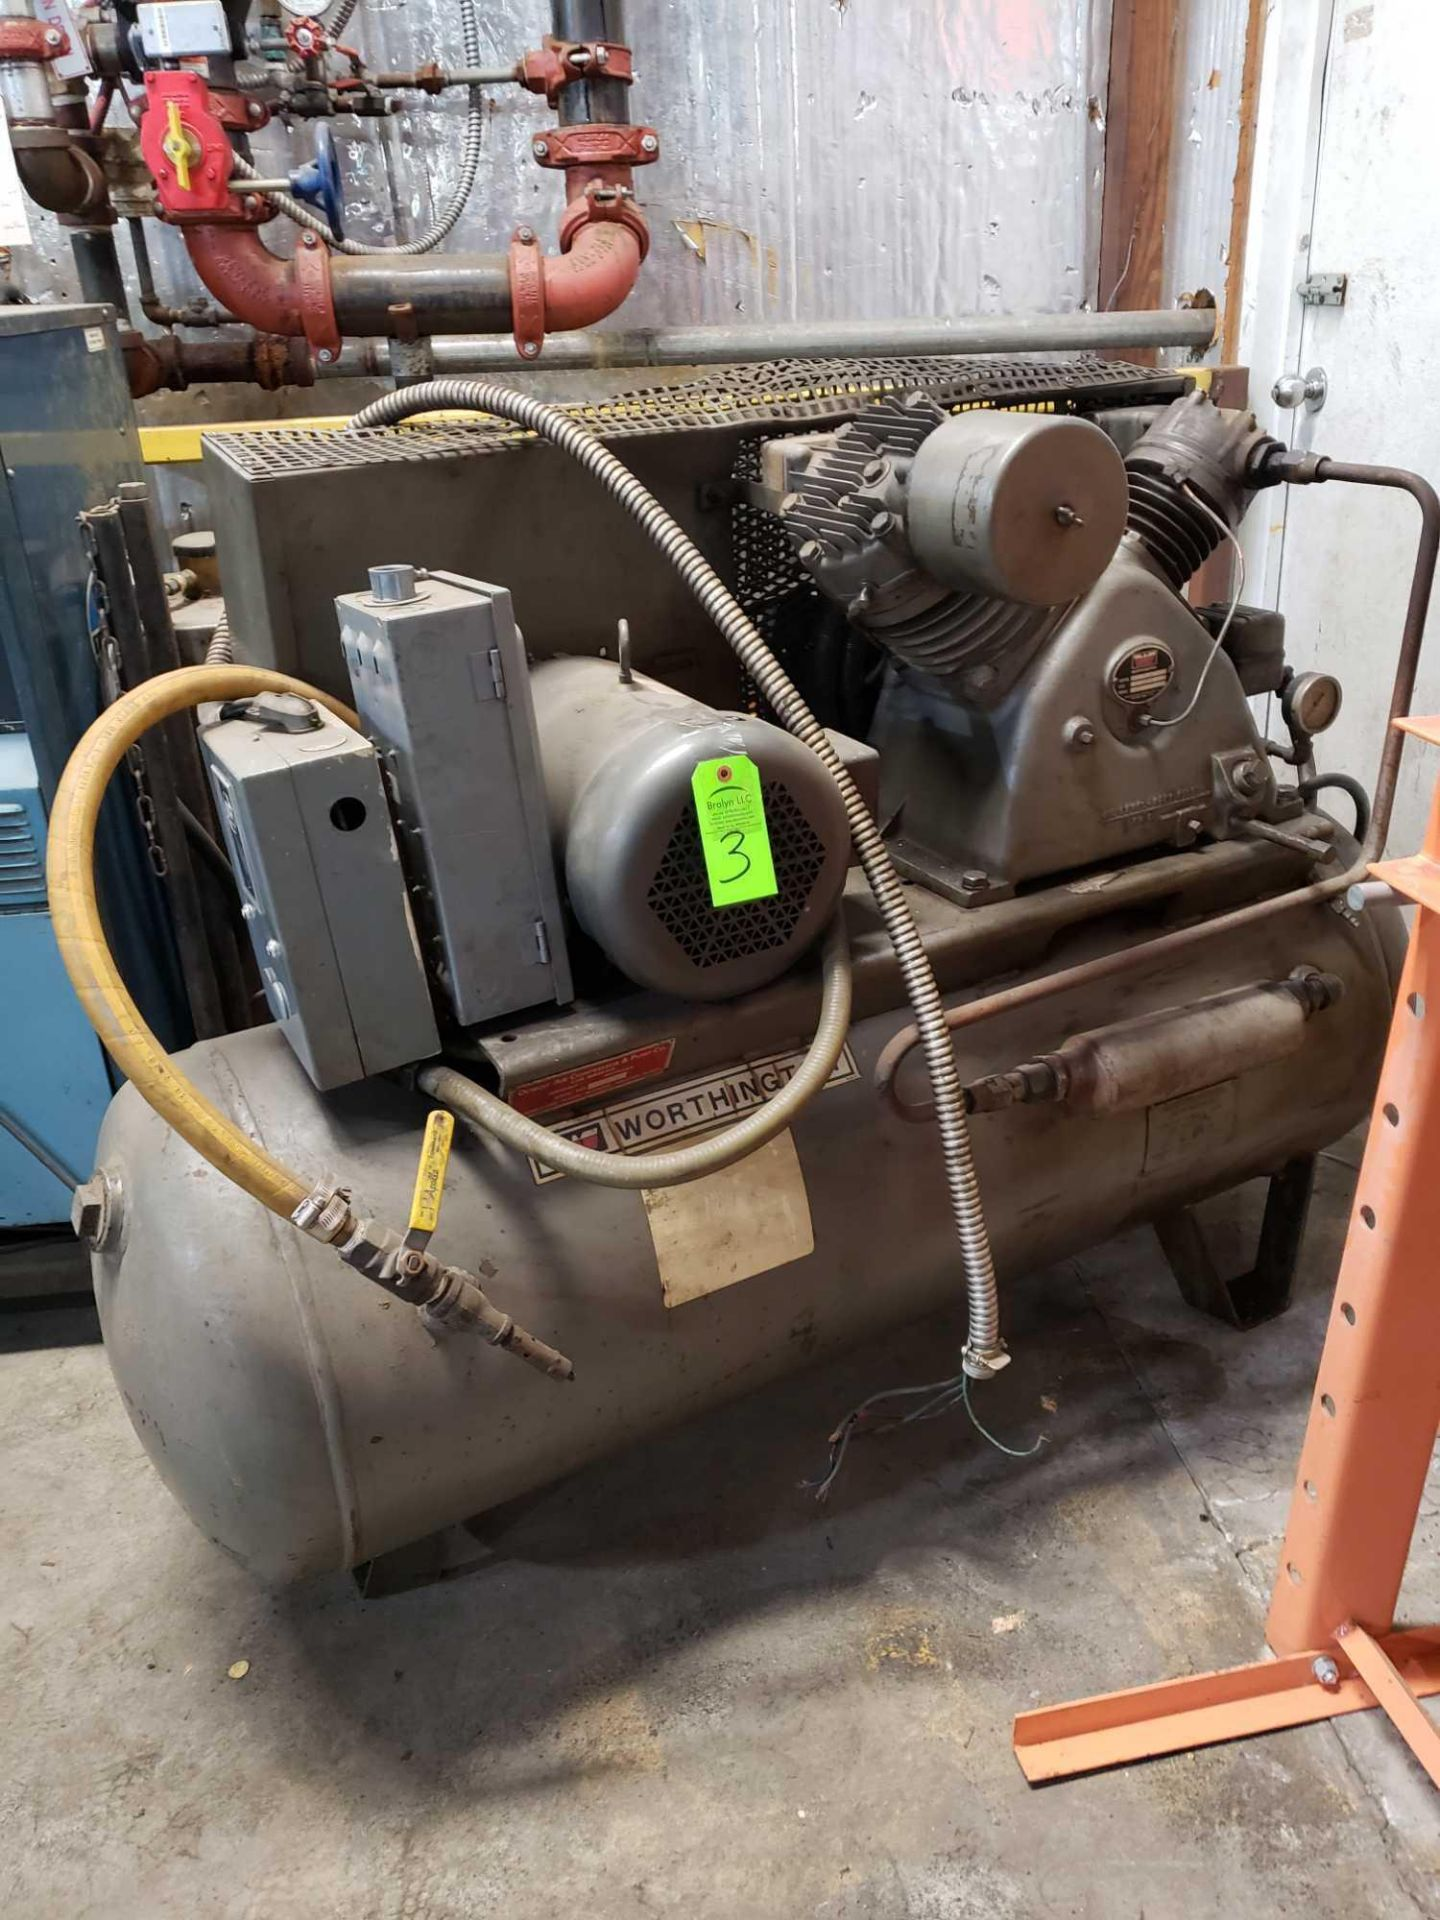 Lot 3 - Worthington 10HP air compressor. 208-230/460v, 3 phase baldor motor